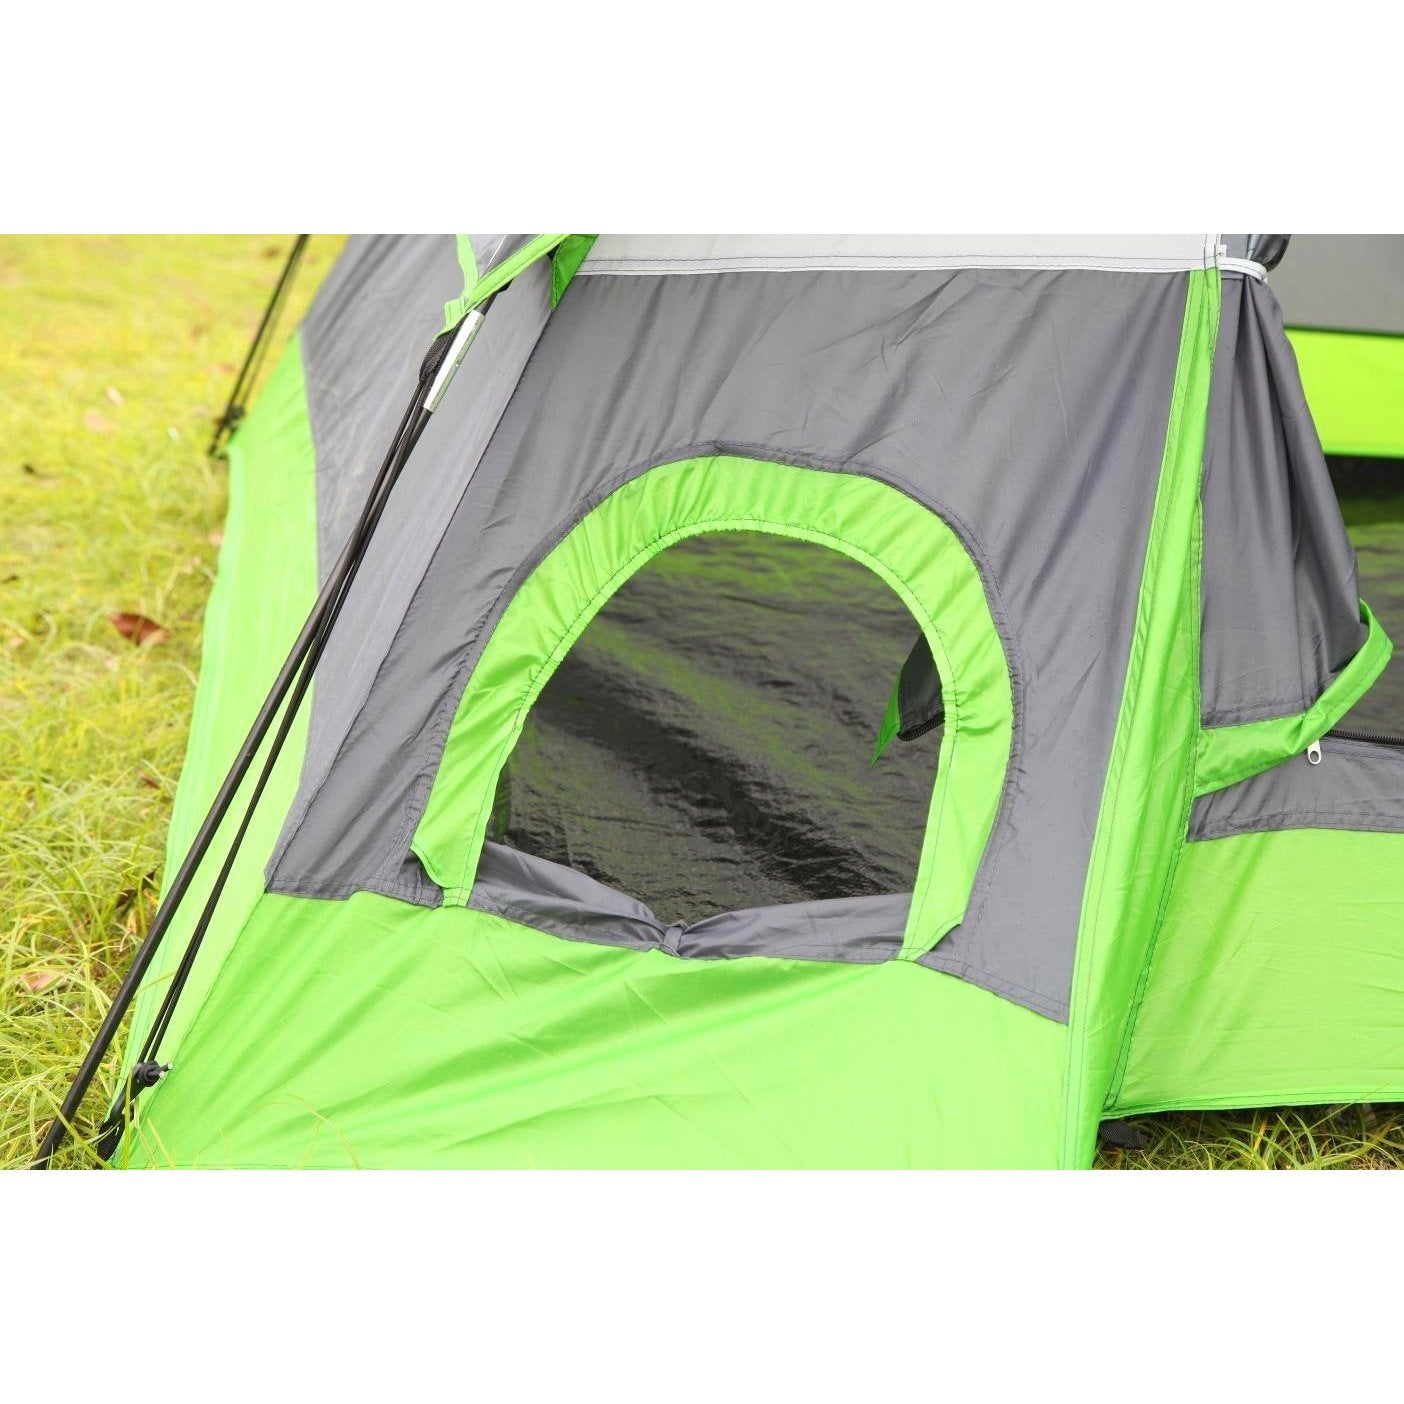 Semoo Waterproof D-Style Door 4-Person C&ing/ Traveling Family Dome Tent with Compression Bag - Free Shipping Today - Overstock - 18115951  sc 1 st  Overstock.com & Semoo Waterproof D-Style Door 4-Person Camping/ Traveling Family ...